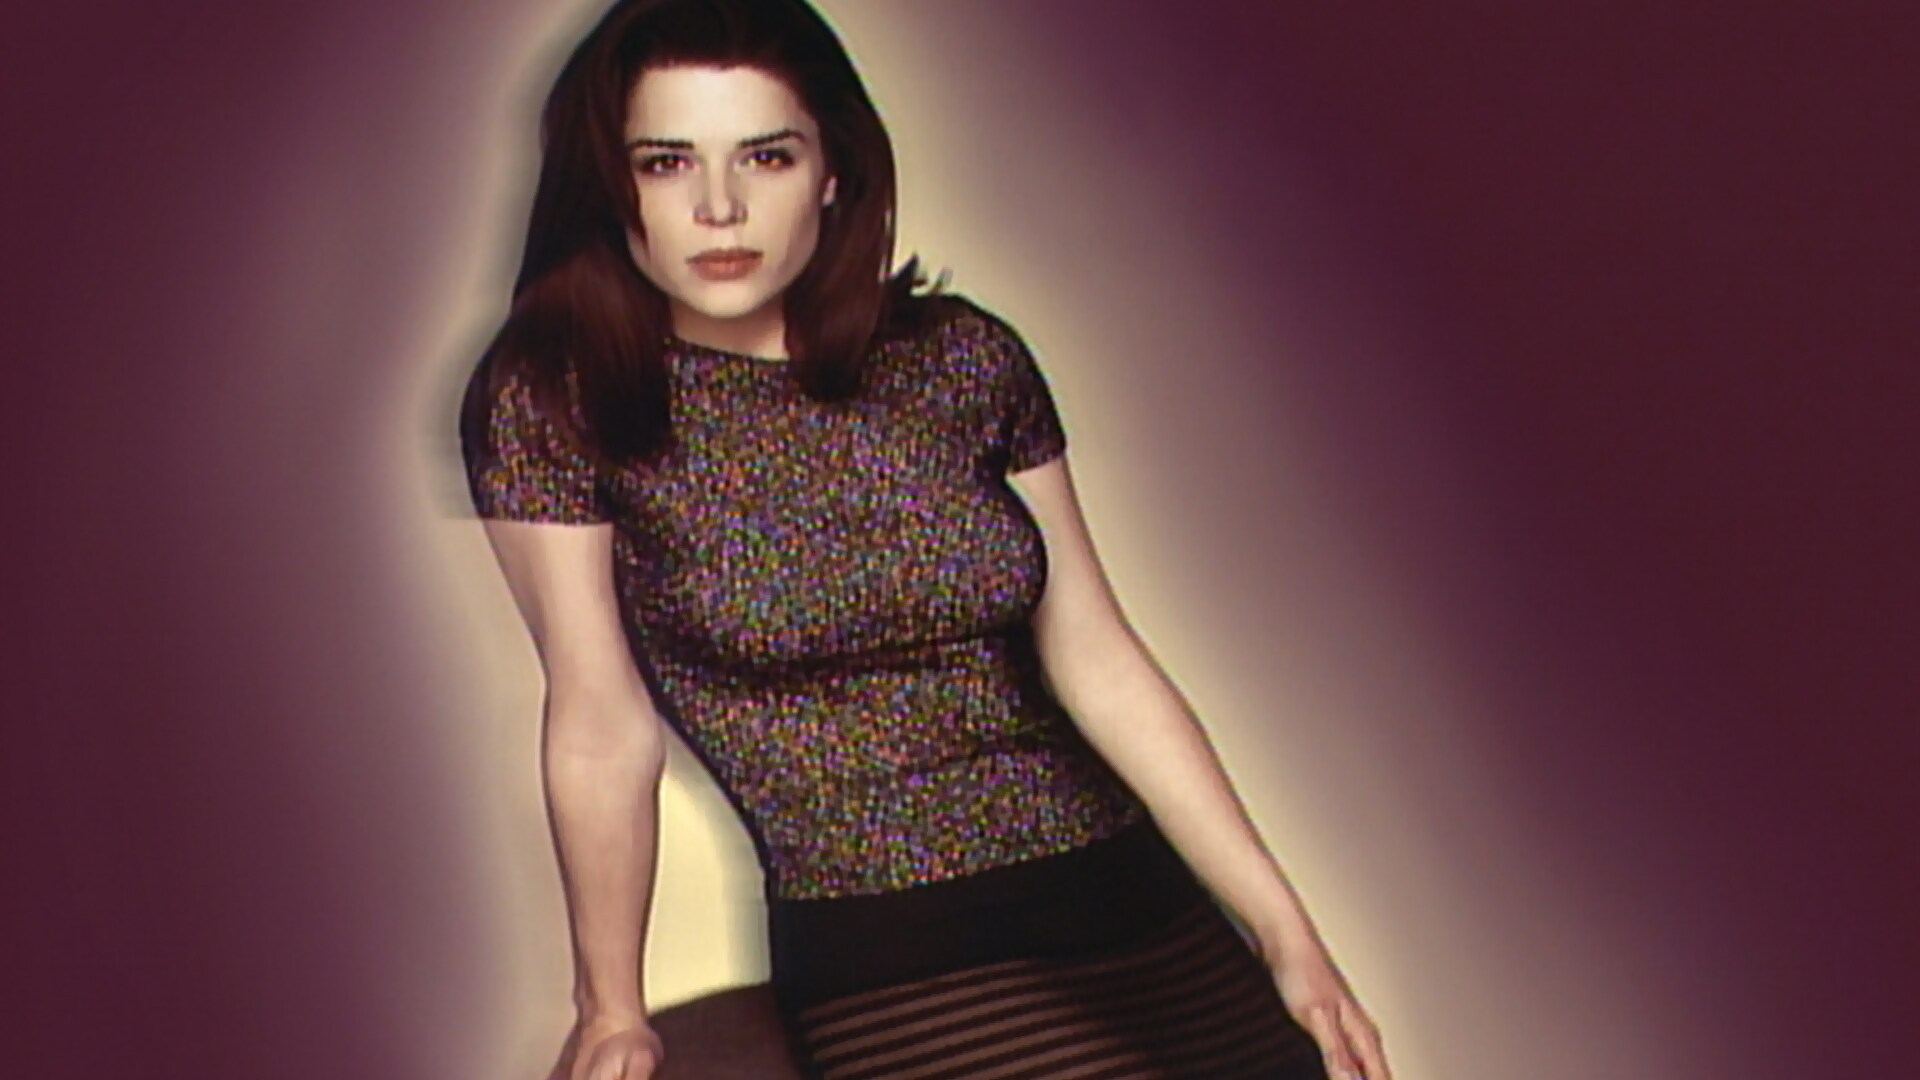 Neve Campbell: February 8, 1997